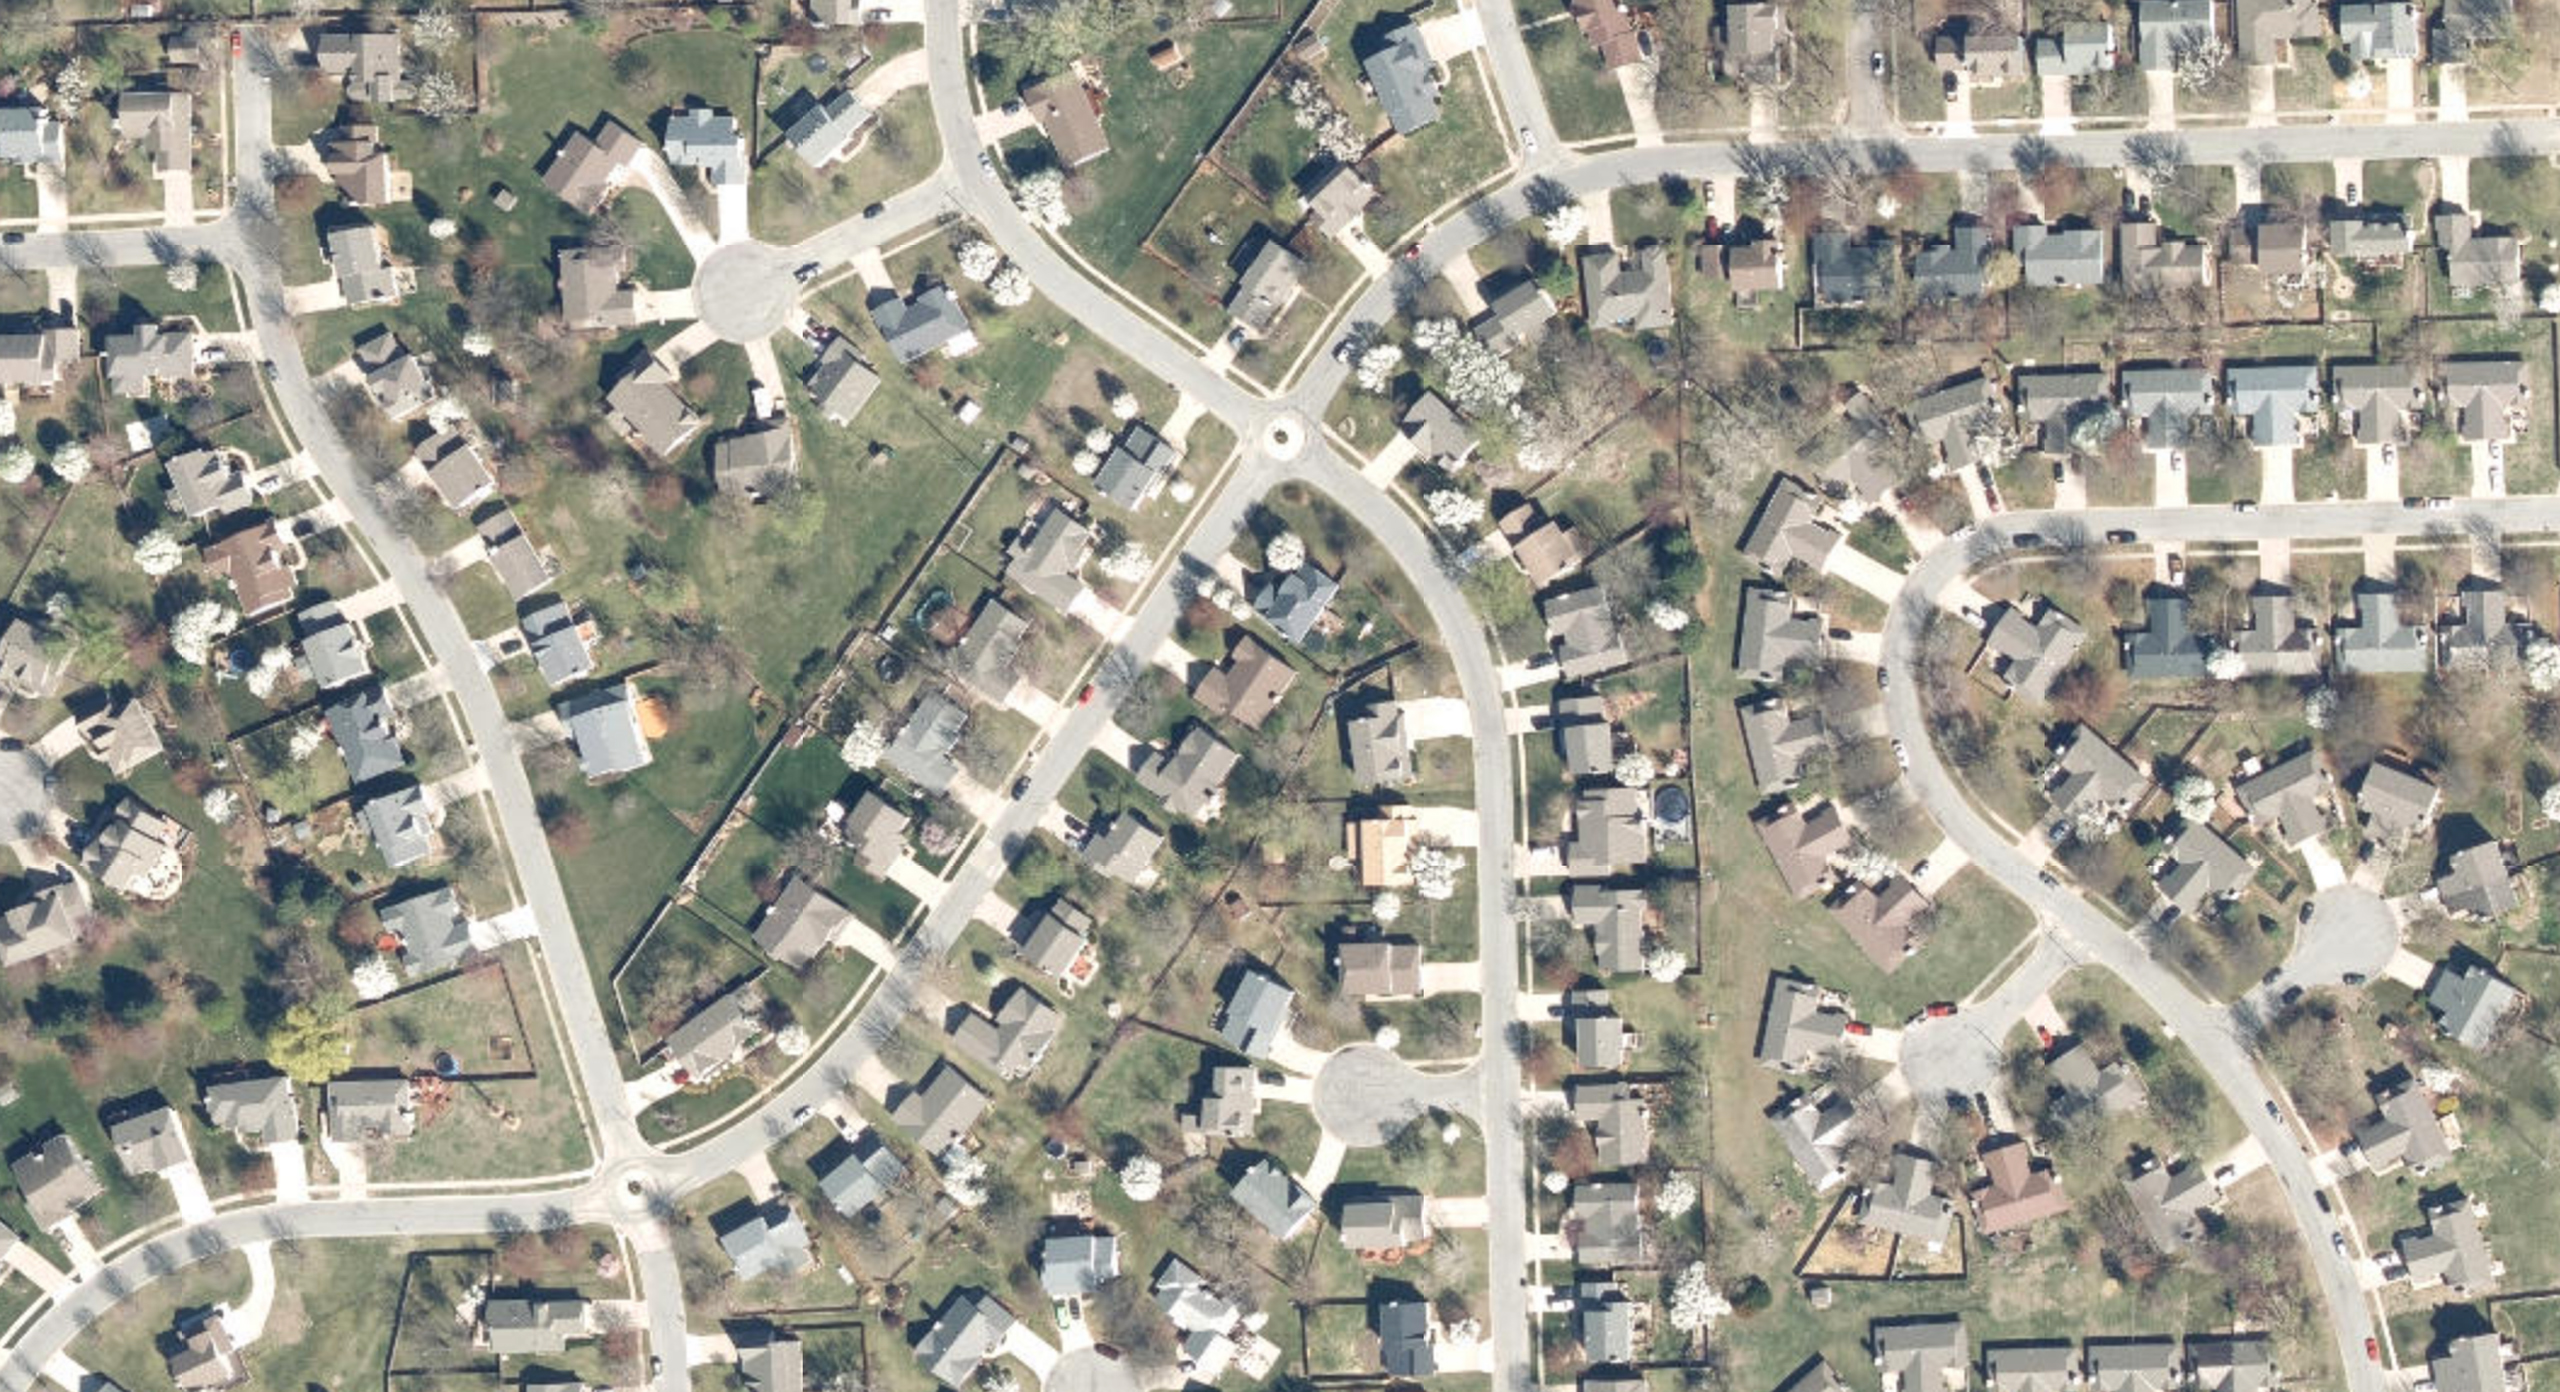 Town Talk | Lawrence's population growth slows, but it's still in better shape than most cities in Kansas